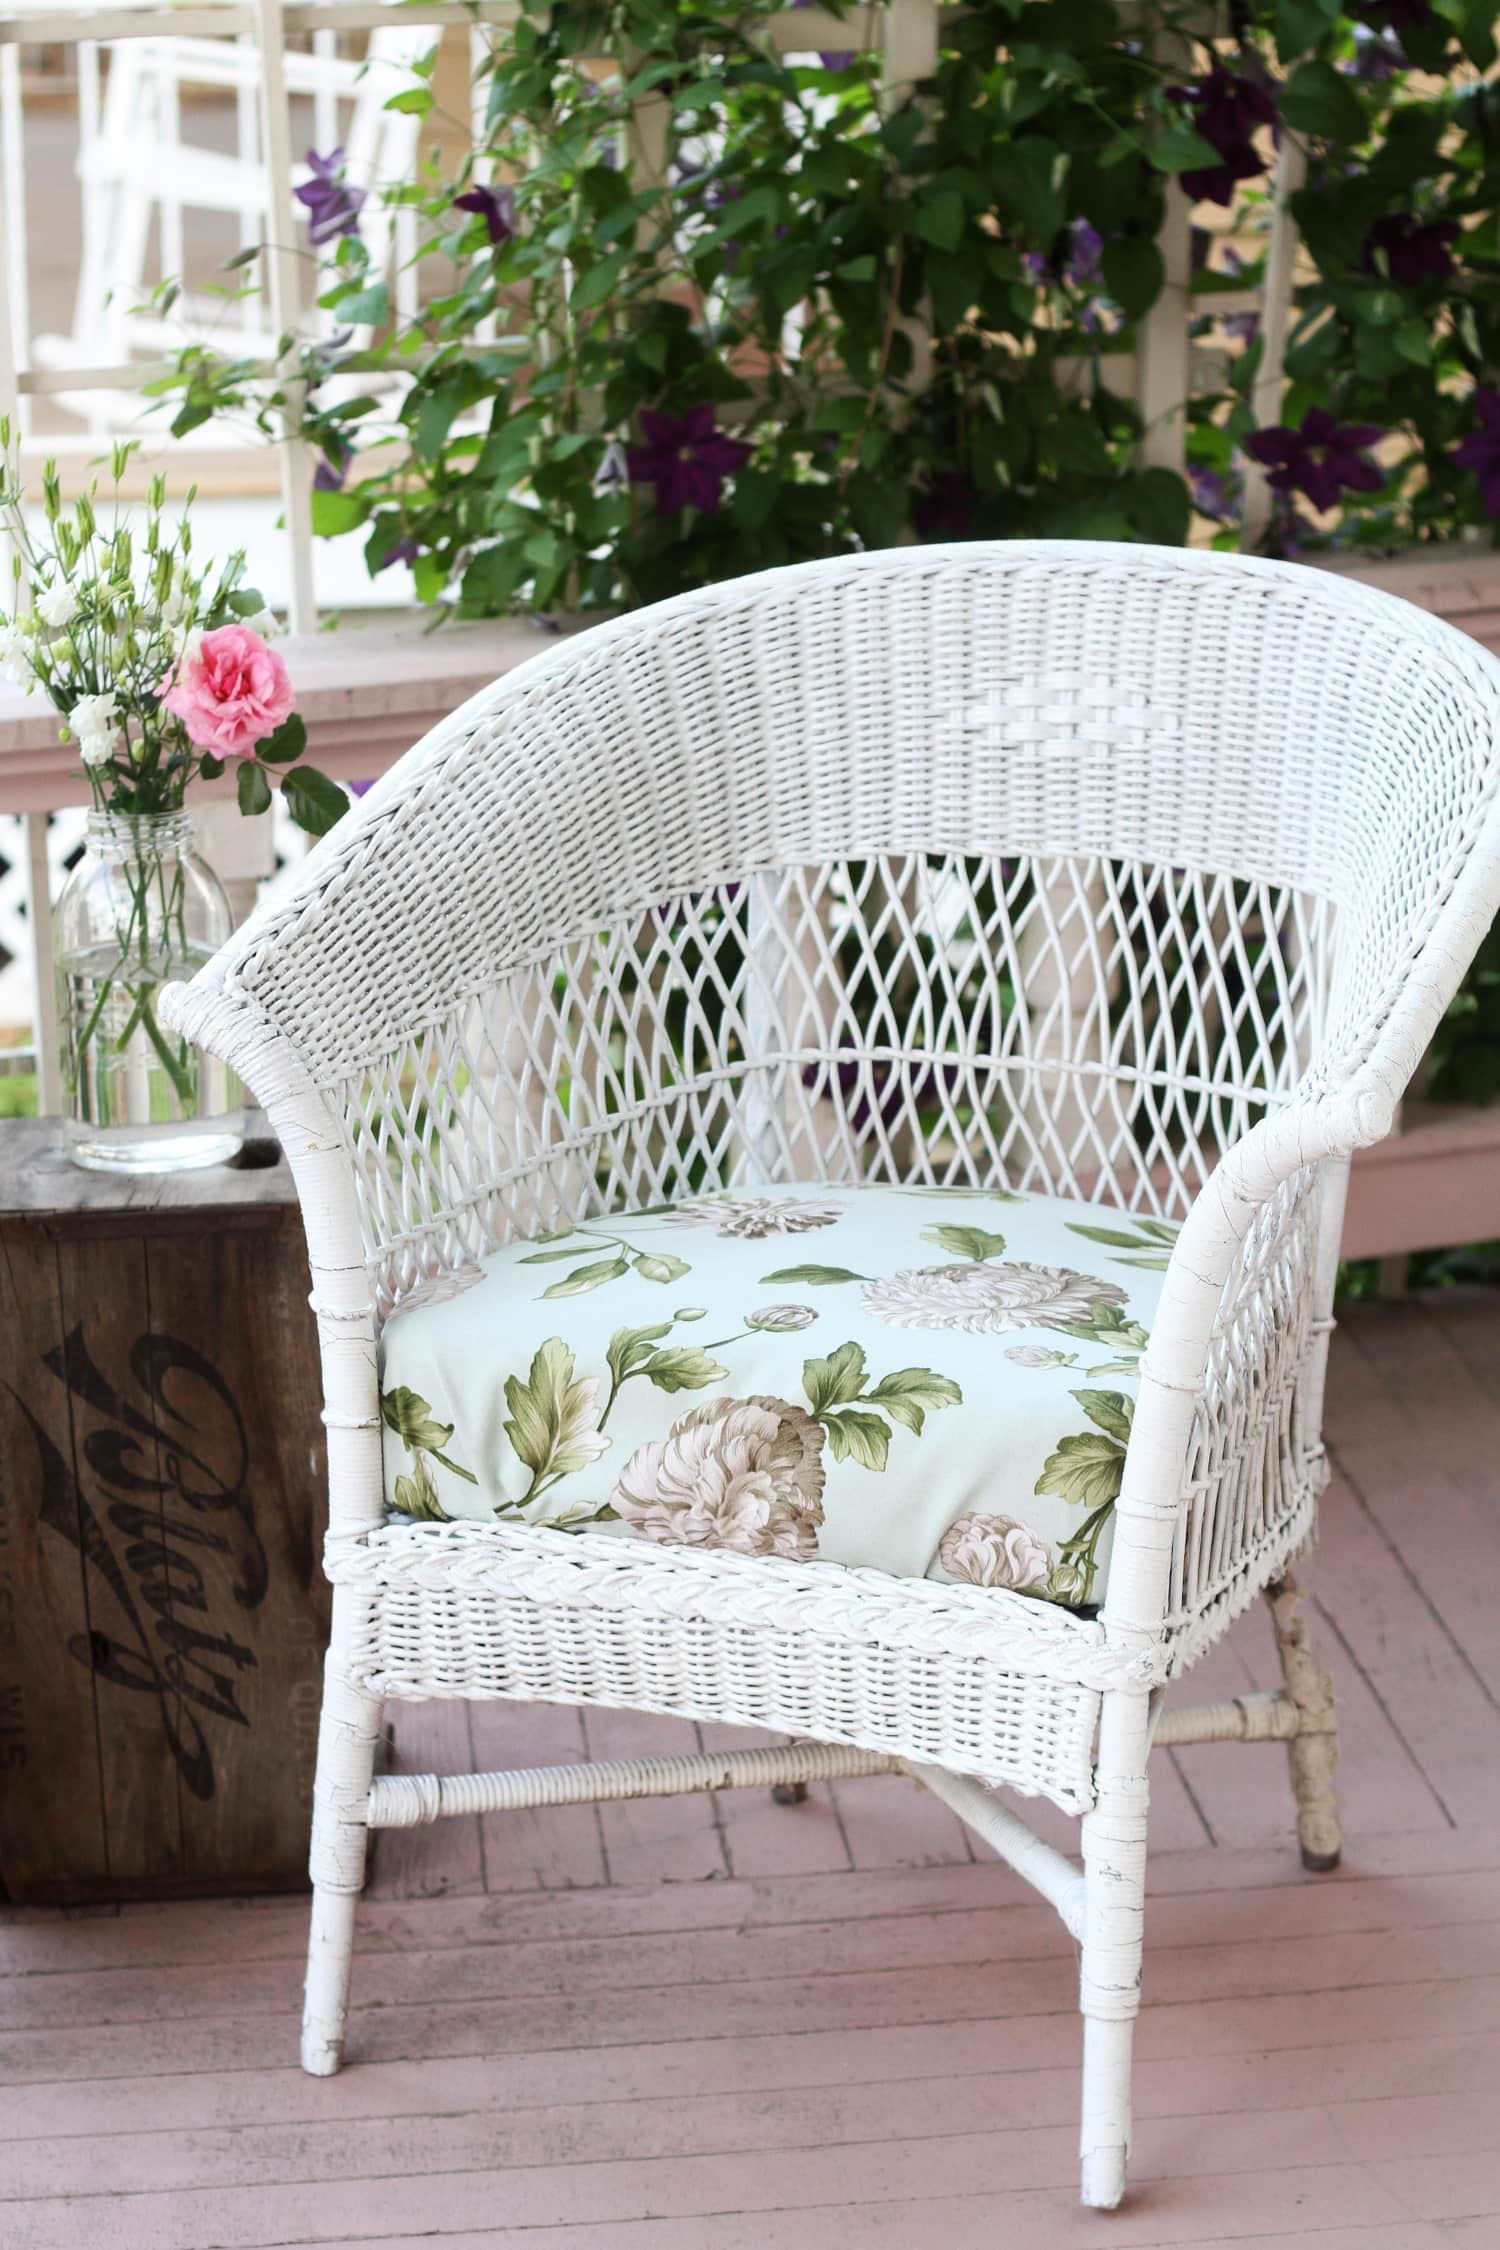 How To Make Super Quick & Easy Drawstring Seat Covers to Update Outdoor Furniture